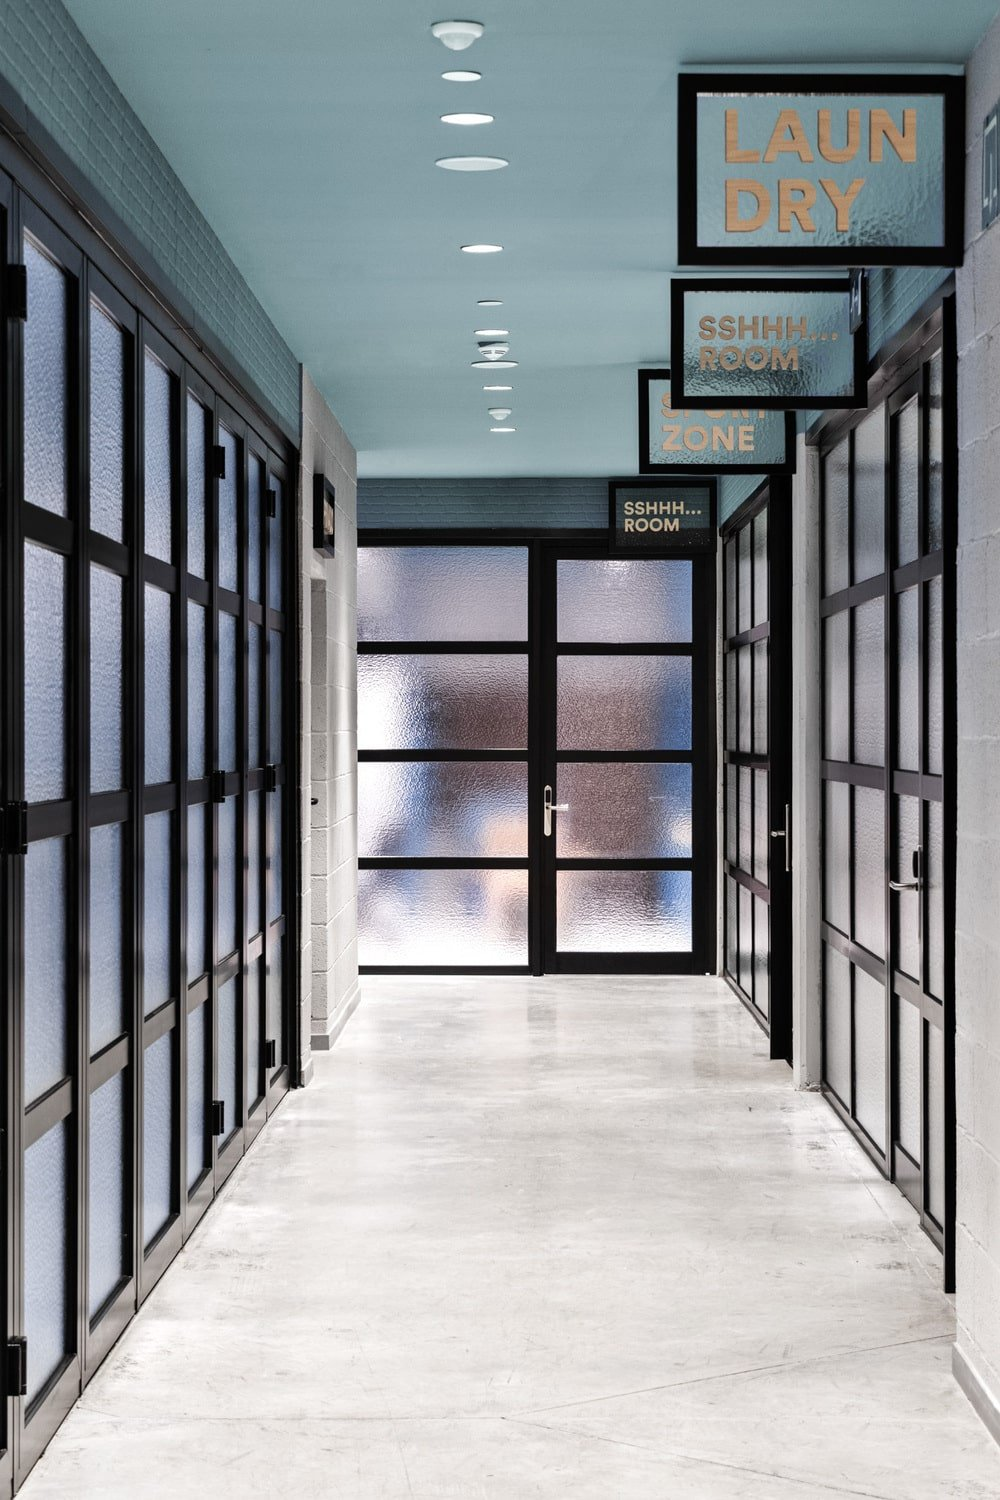 This is a hallway inside the student residency that has rows of forsted glass doors and walls on both sides to provide privacy.